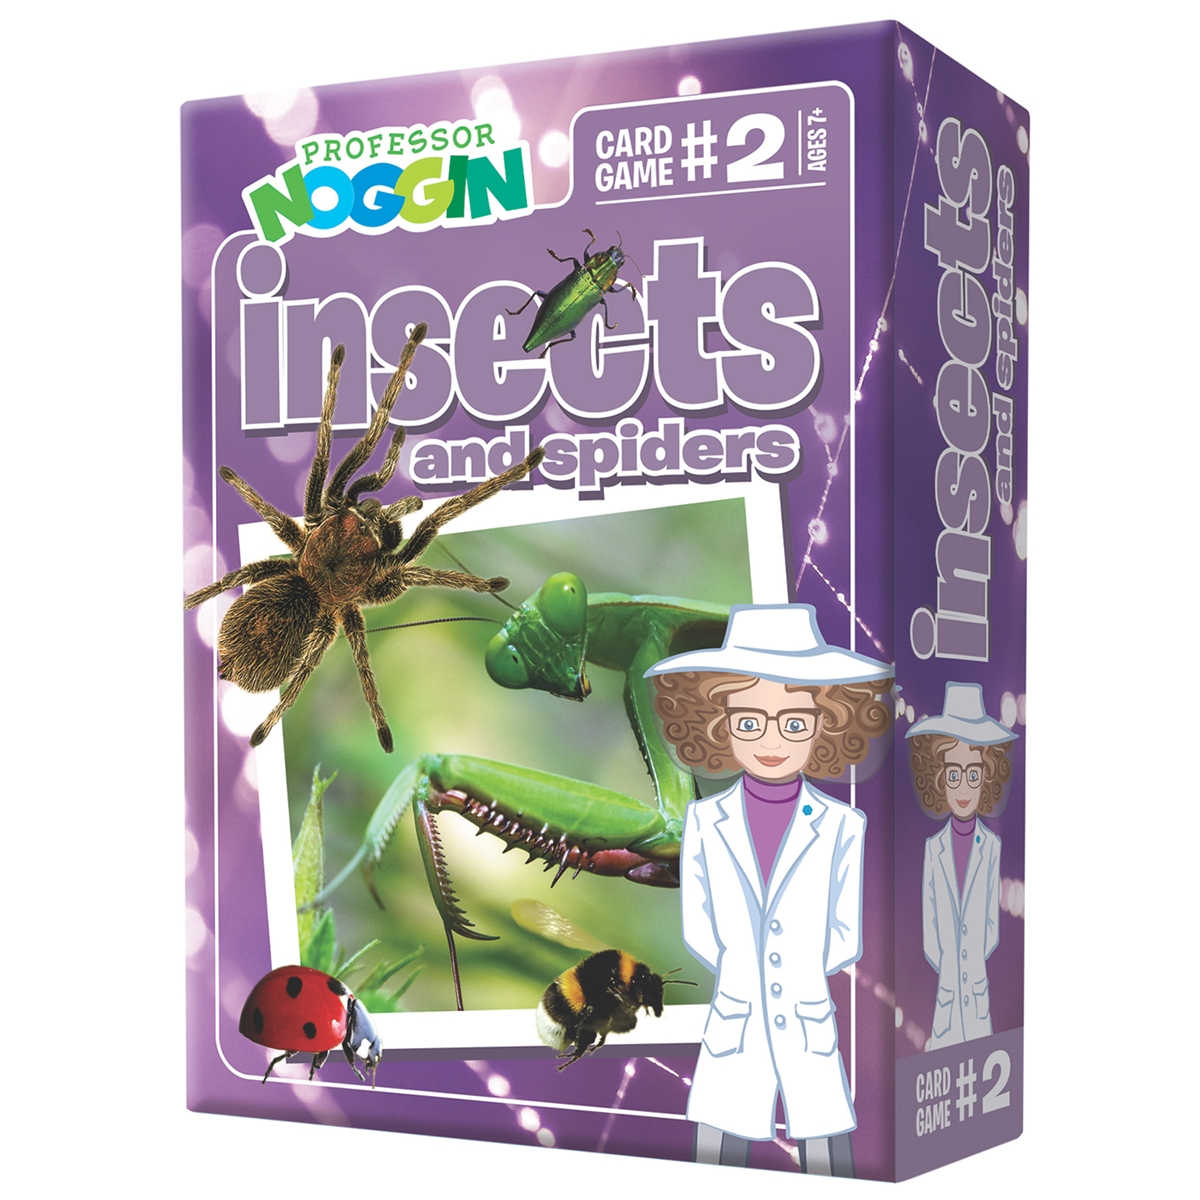 Professor Noggin - Insects and Spiders